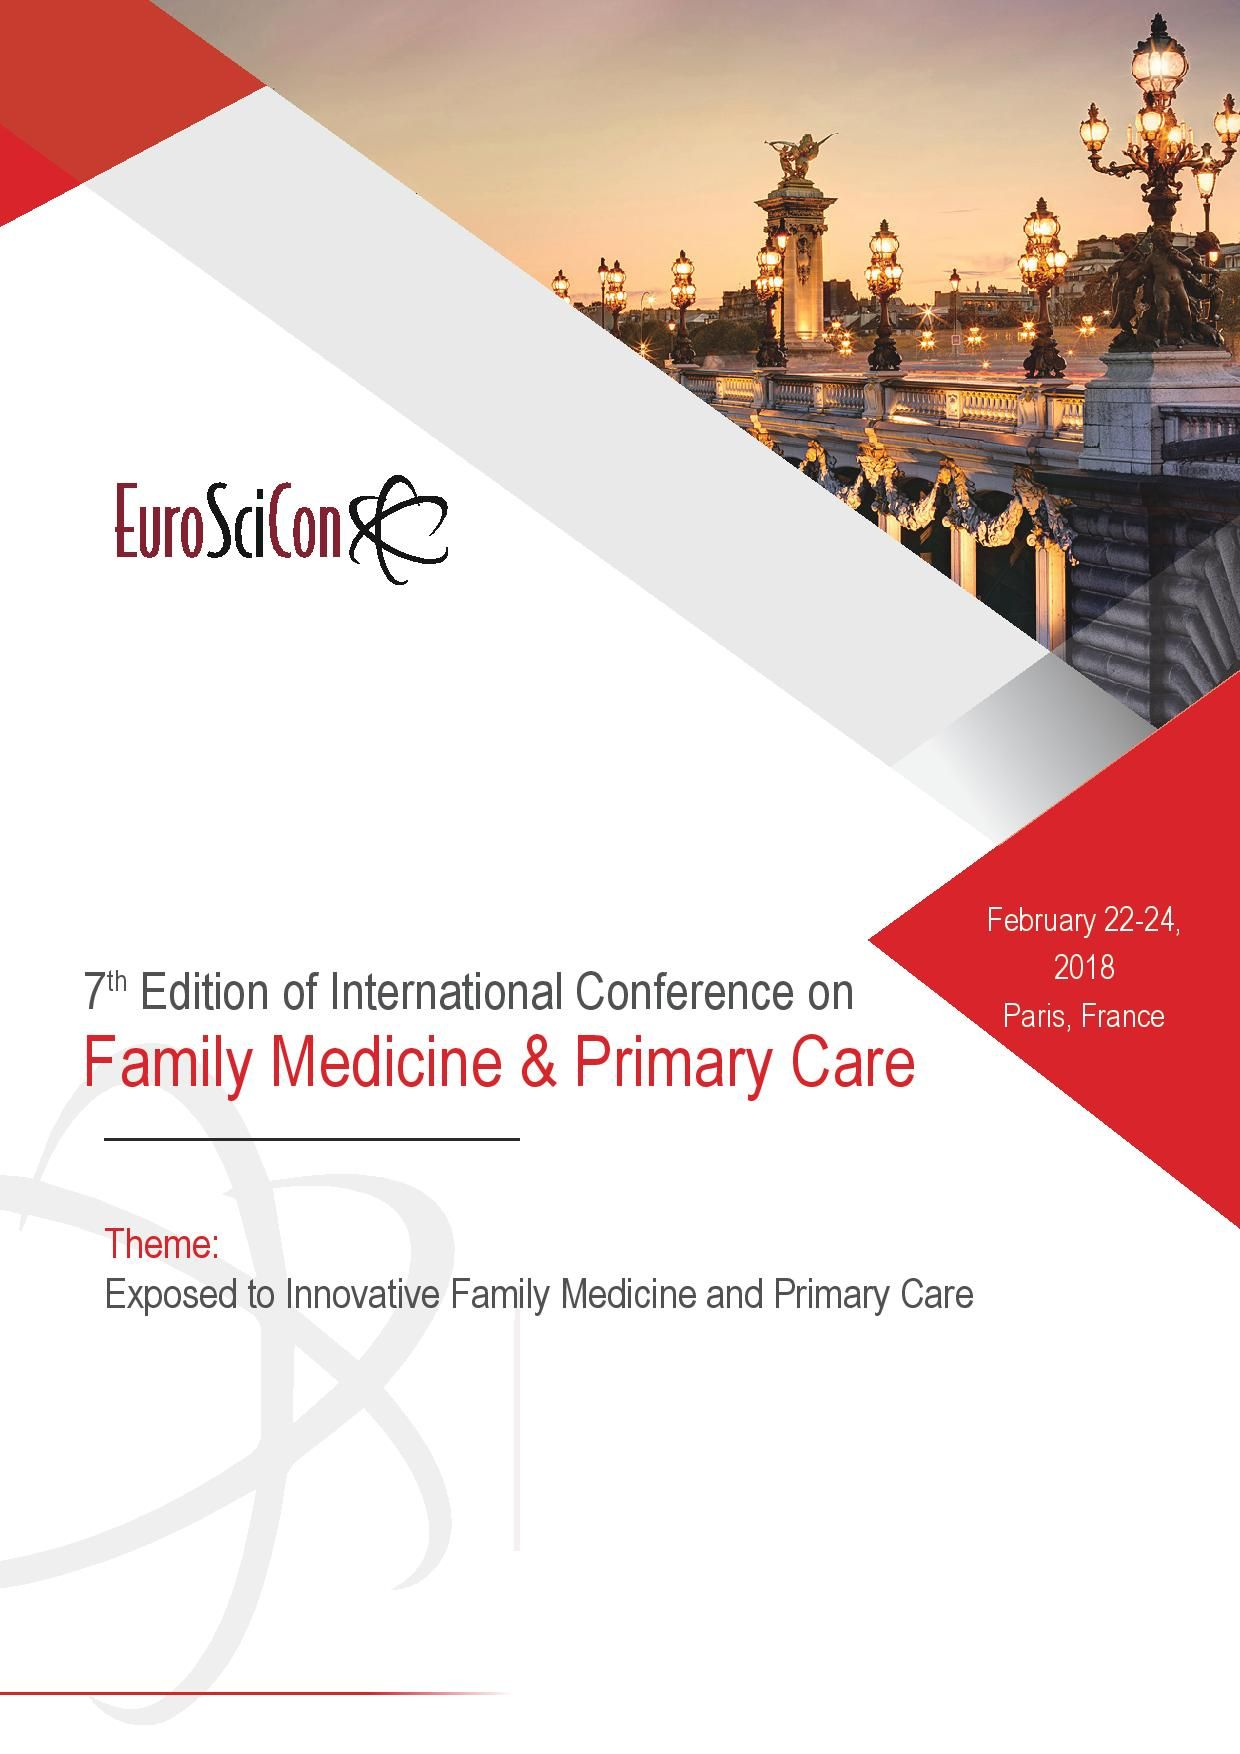 7th edition of international conference on family